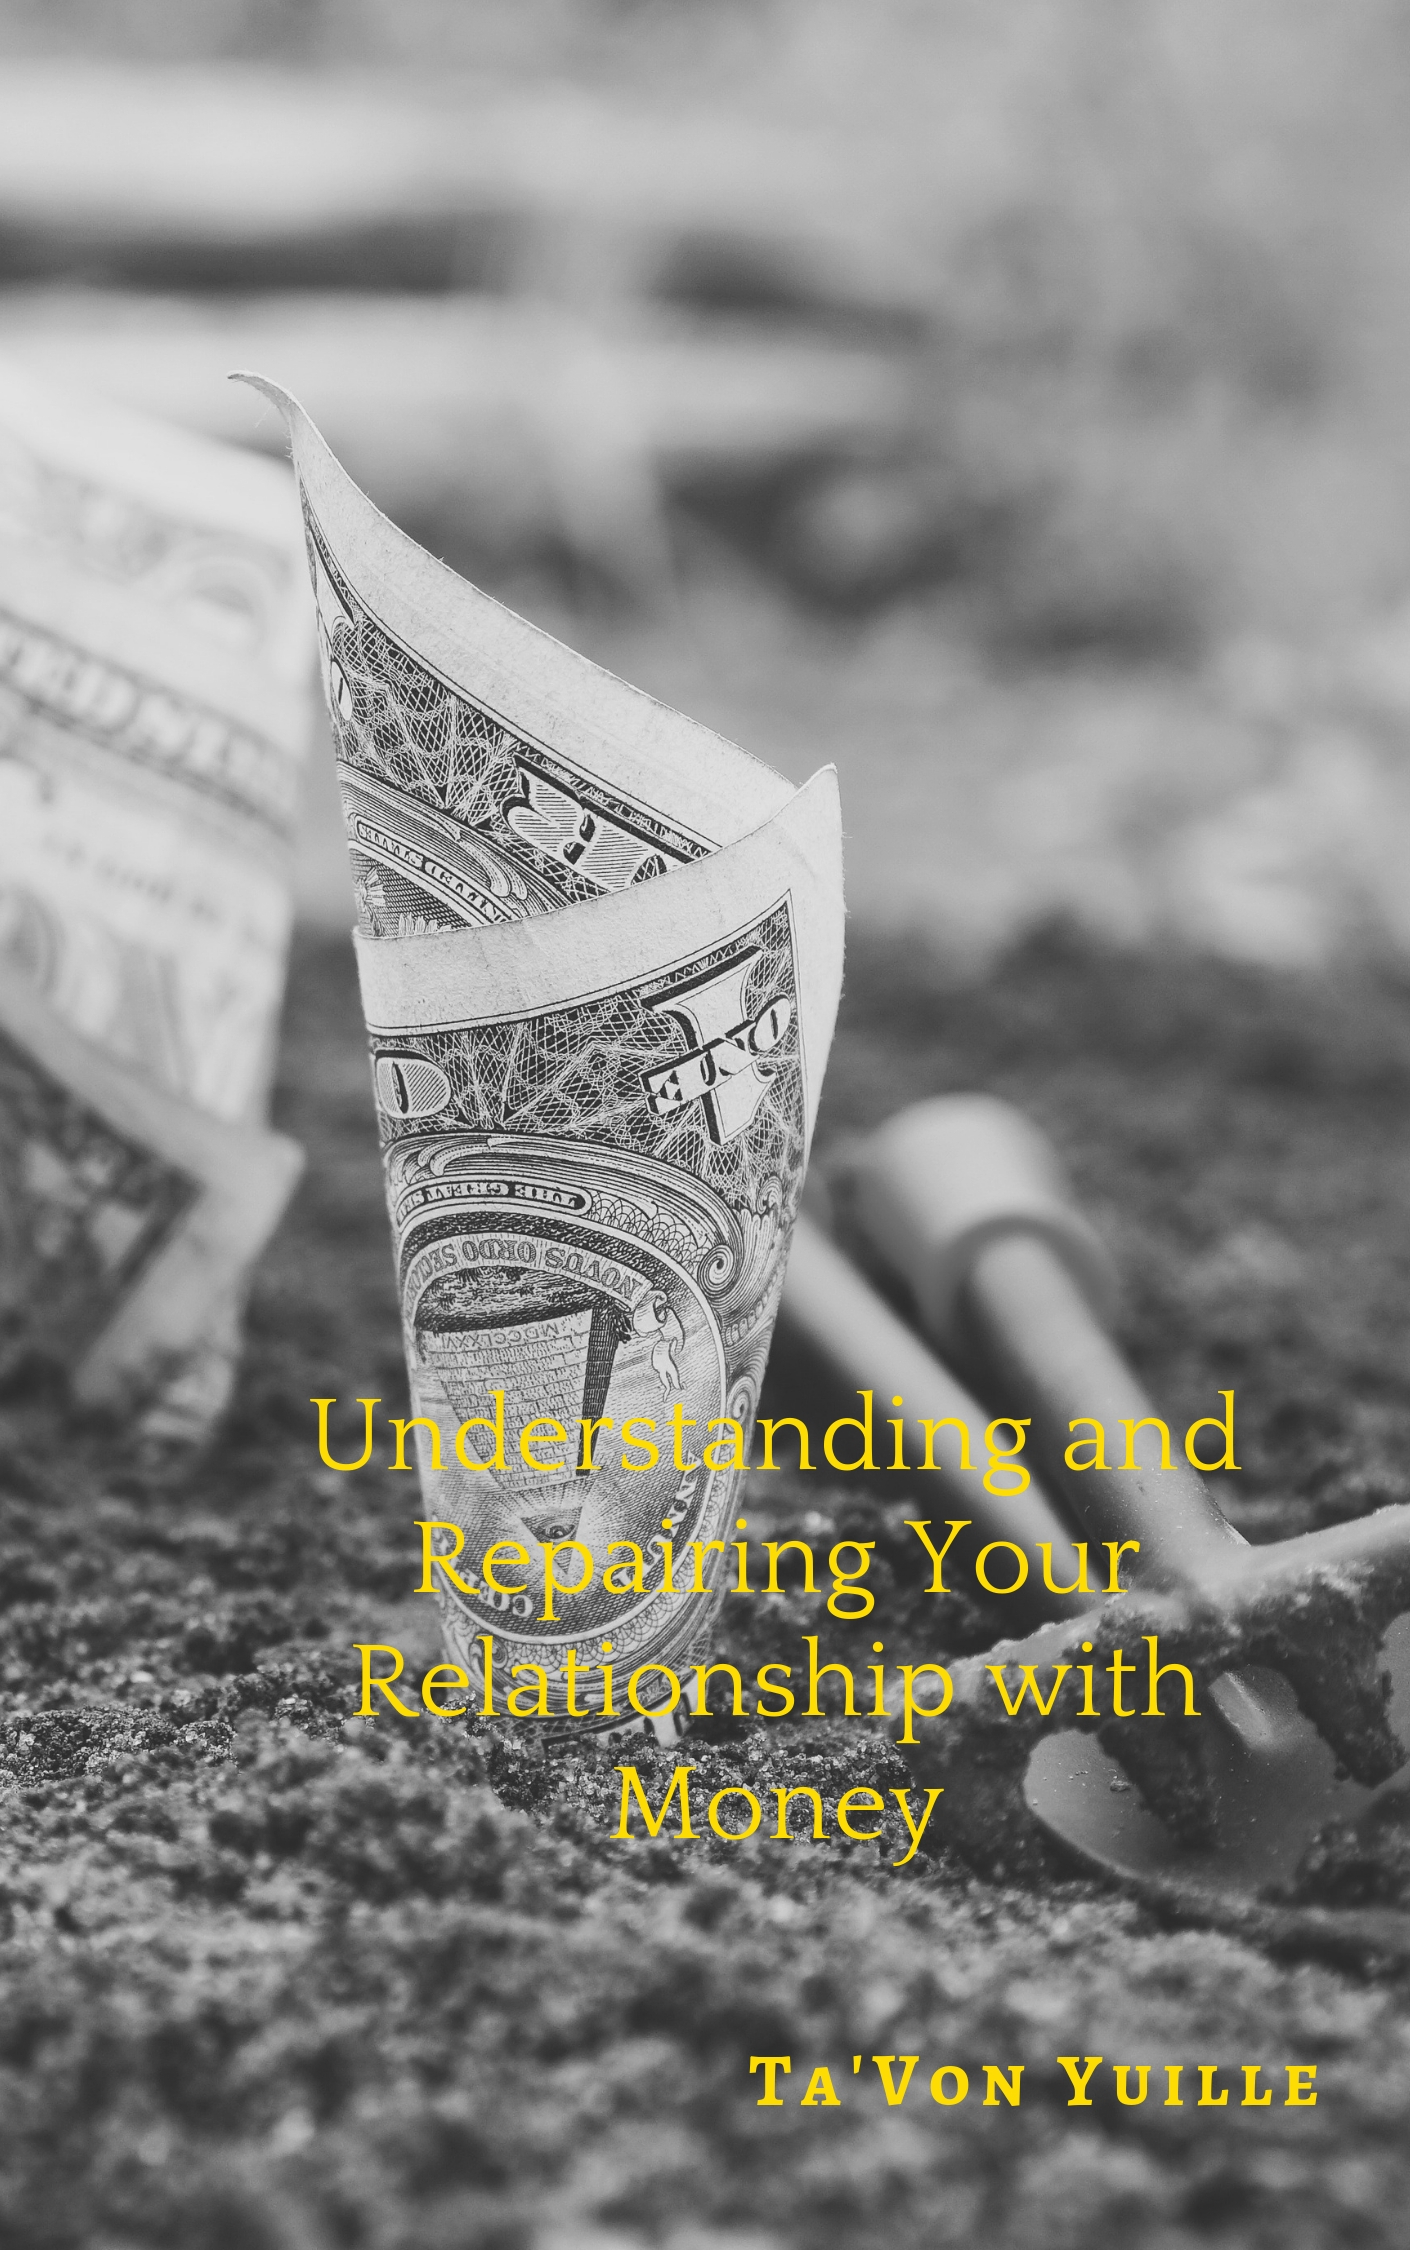 Personal finance ebook to help repair relationship with money.